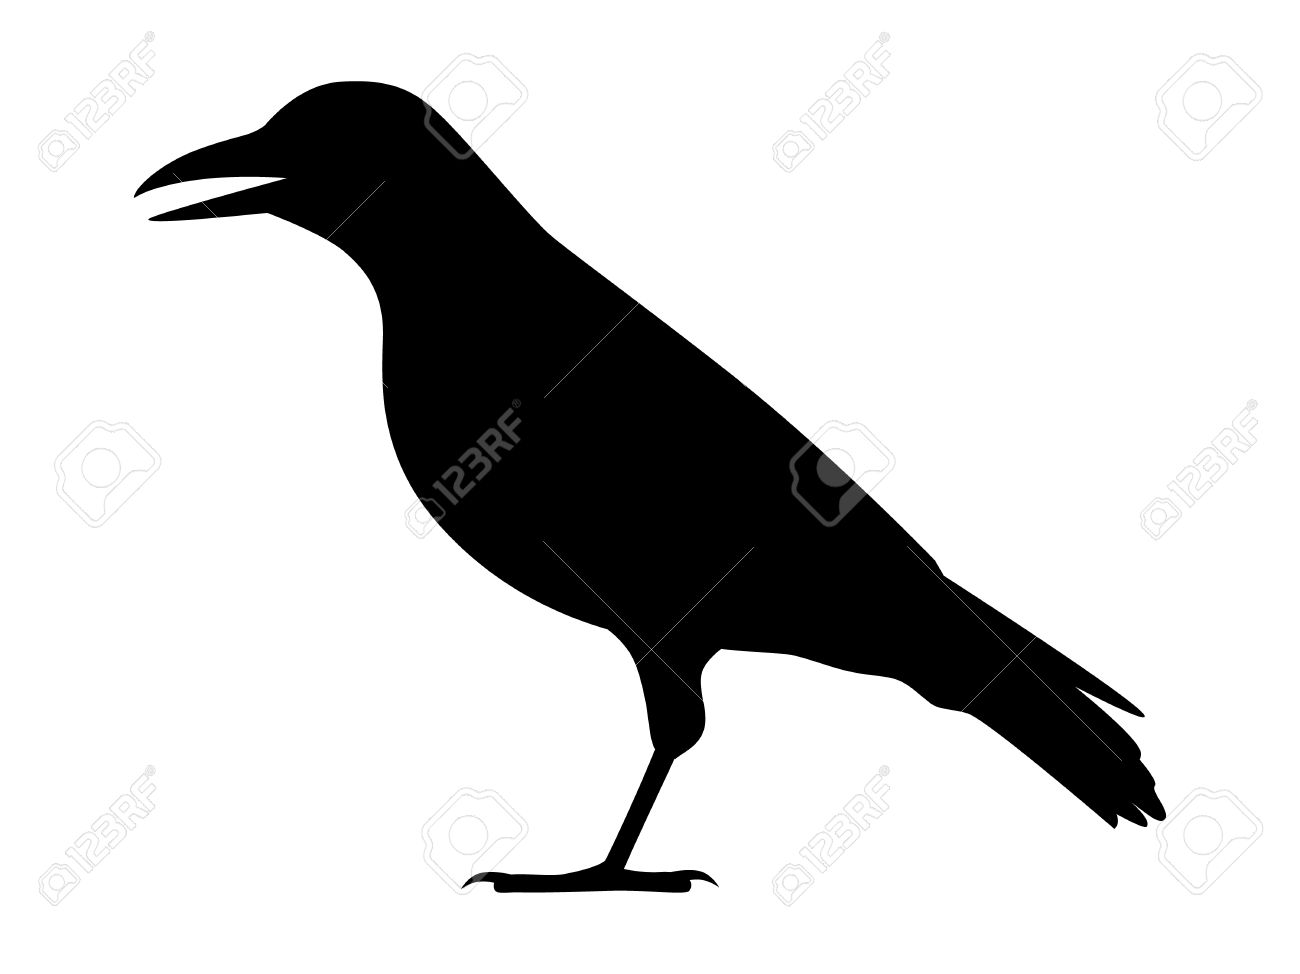 Crow raven jackdaw or corvus bird flat icon for apps and crow raven jackdaw or corvus bird flat icon for apps and websites stock vector biocorpaavc